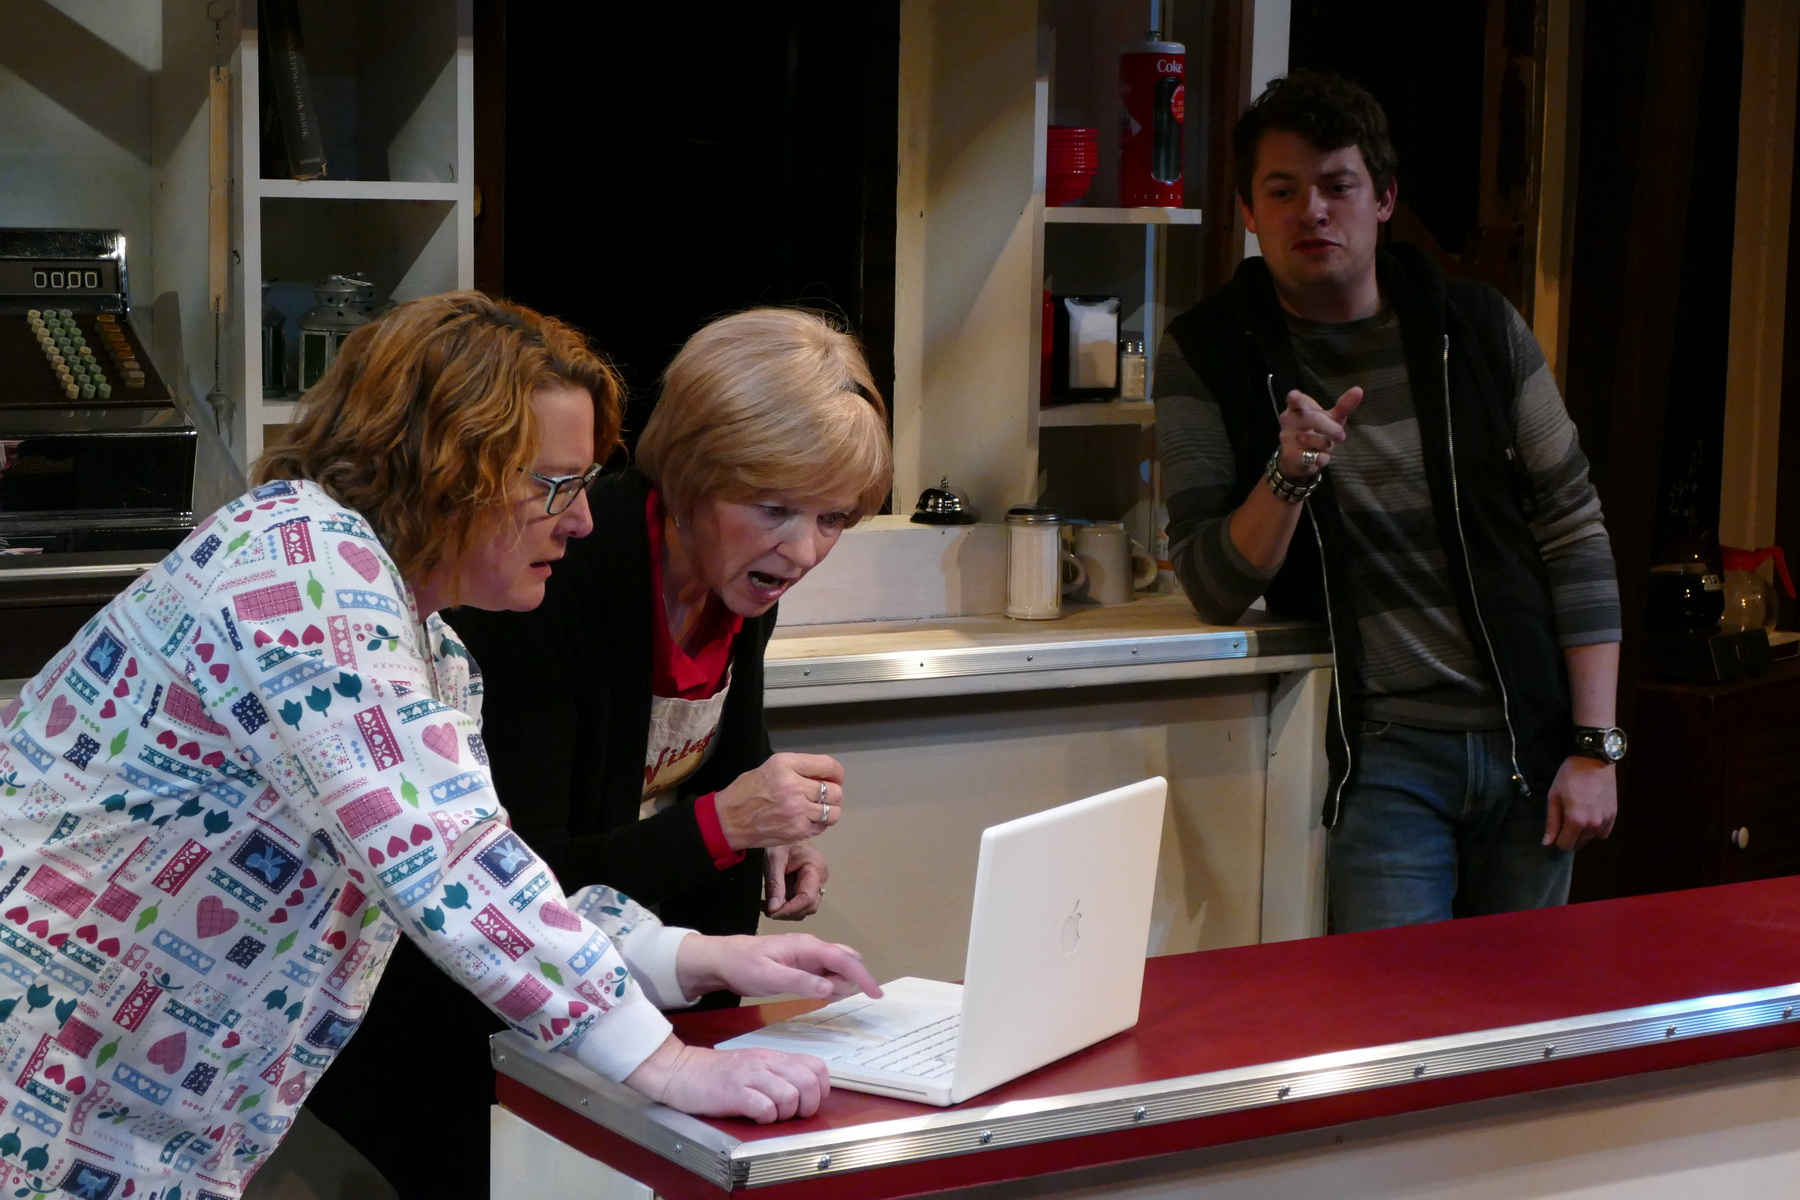 Lisa L Wiley as Kate Myers, Anne McEvoy as Sheila Banks and Kyle Adam as Ryan Banks